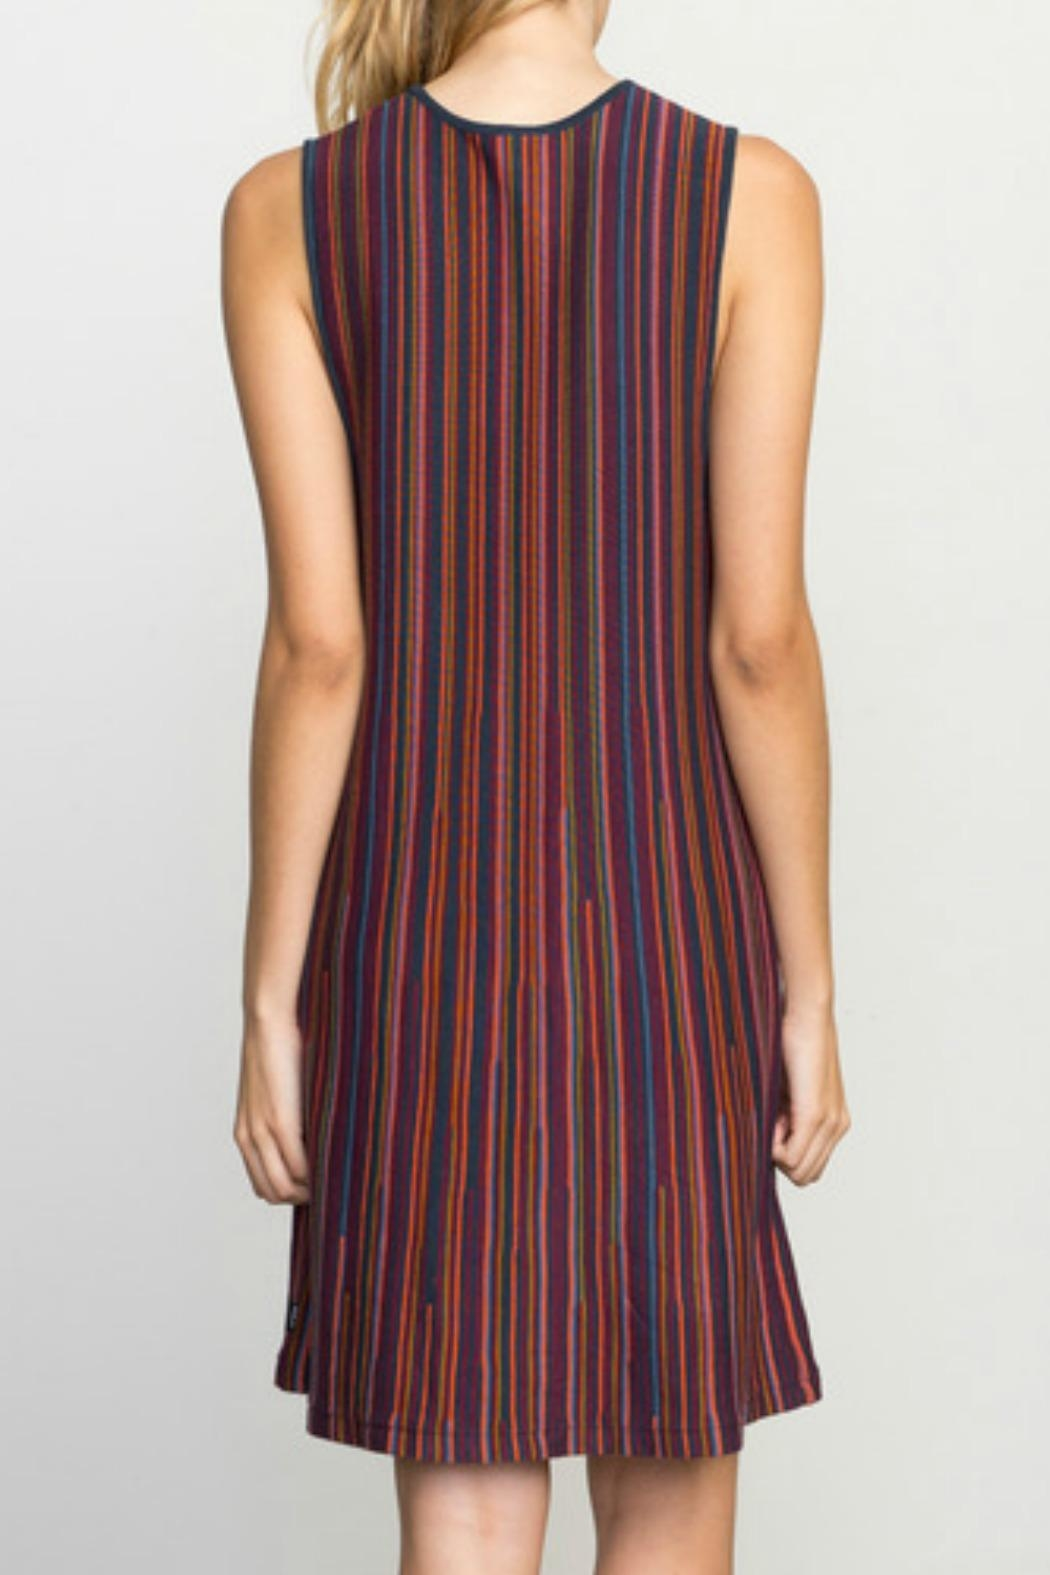 RVCA Striped Knit Dress - Front Full Image